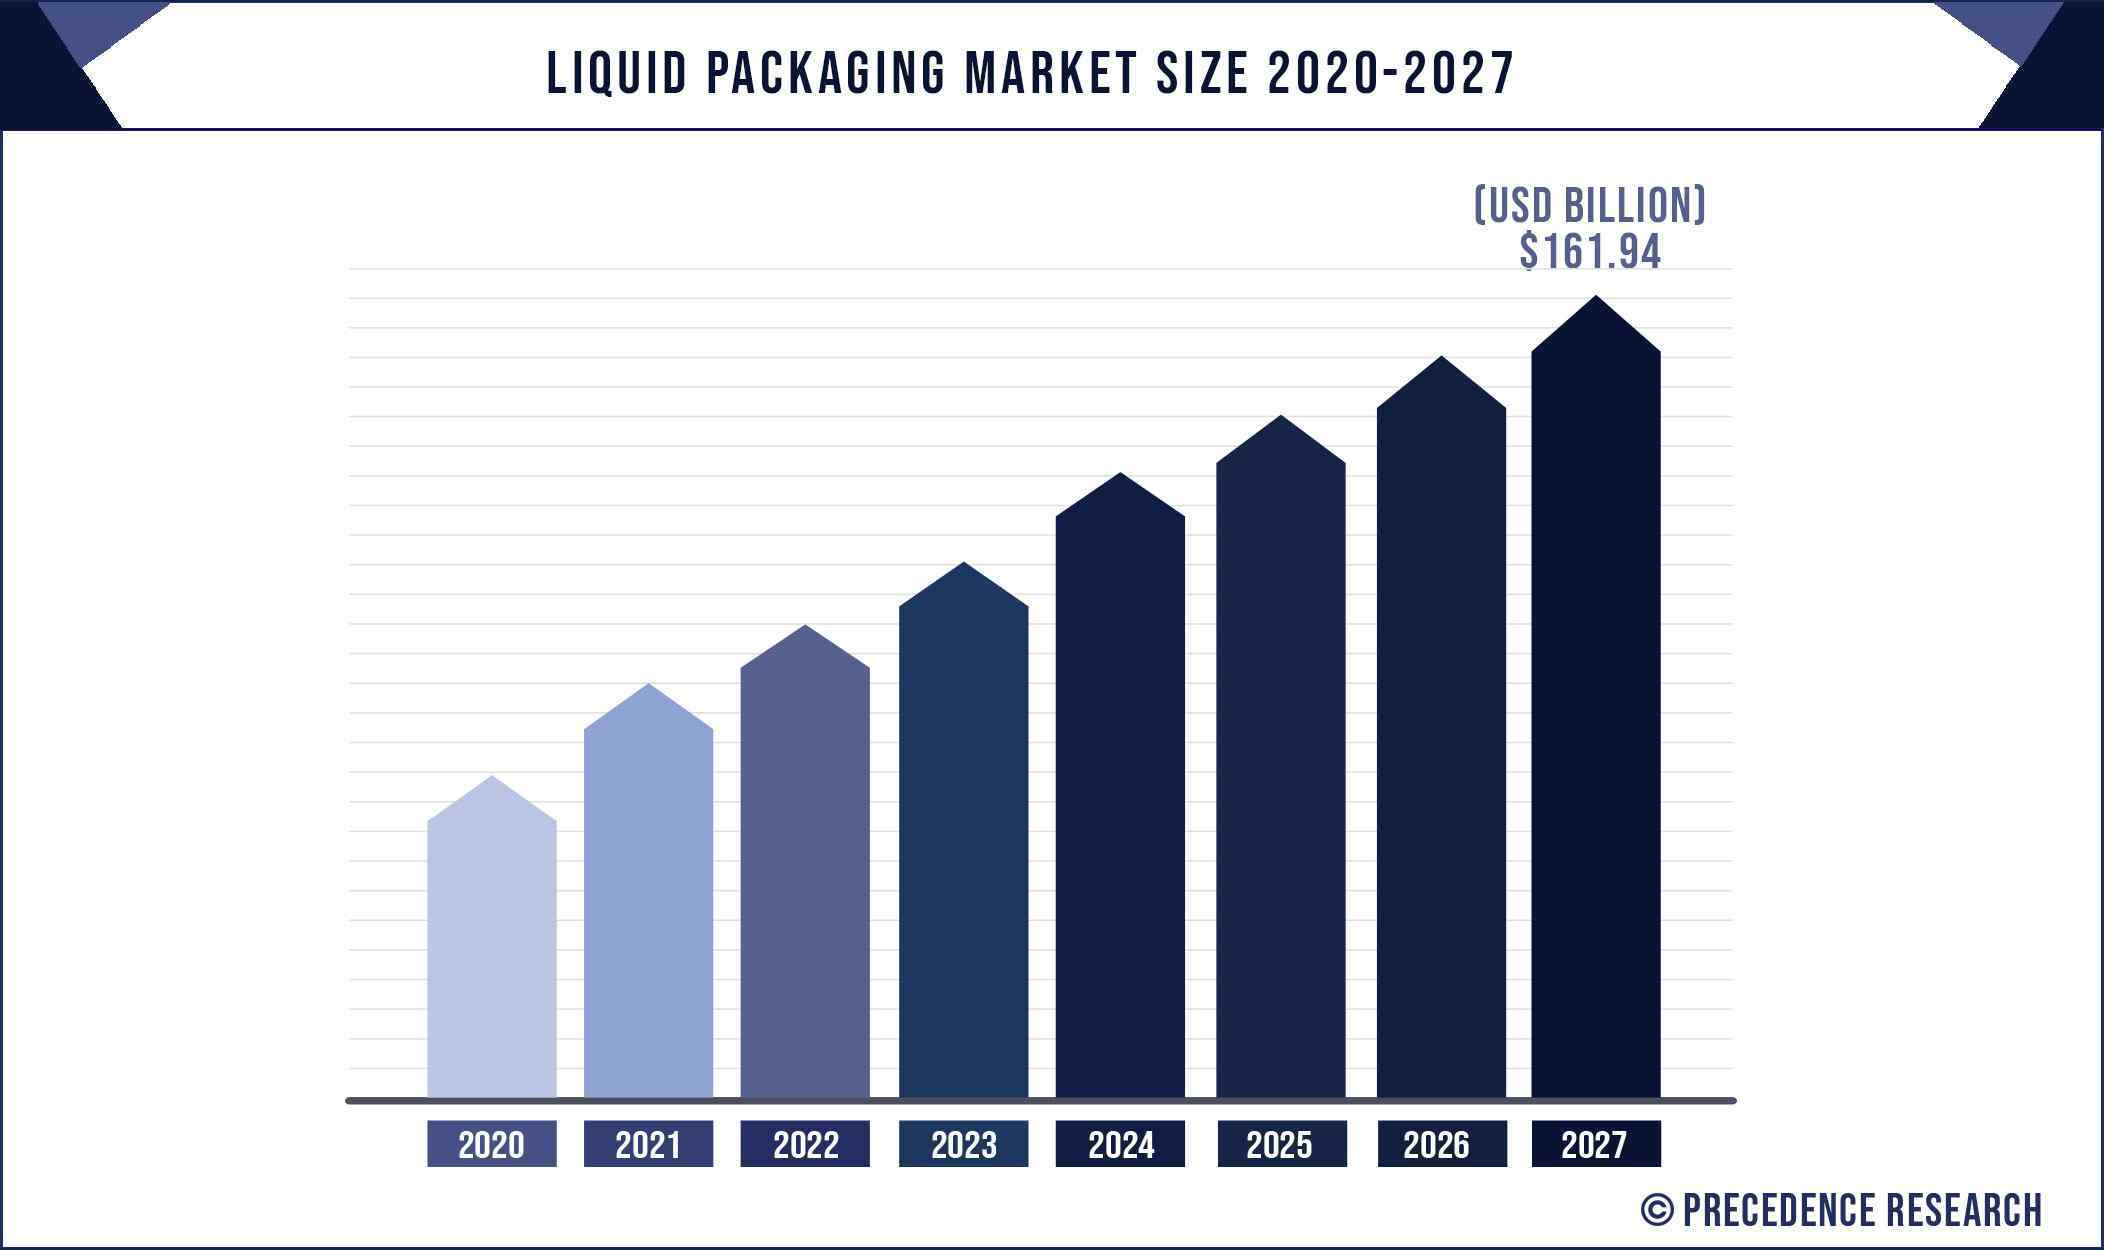 Liquid Packaging Market Size 2020 to 2027